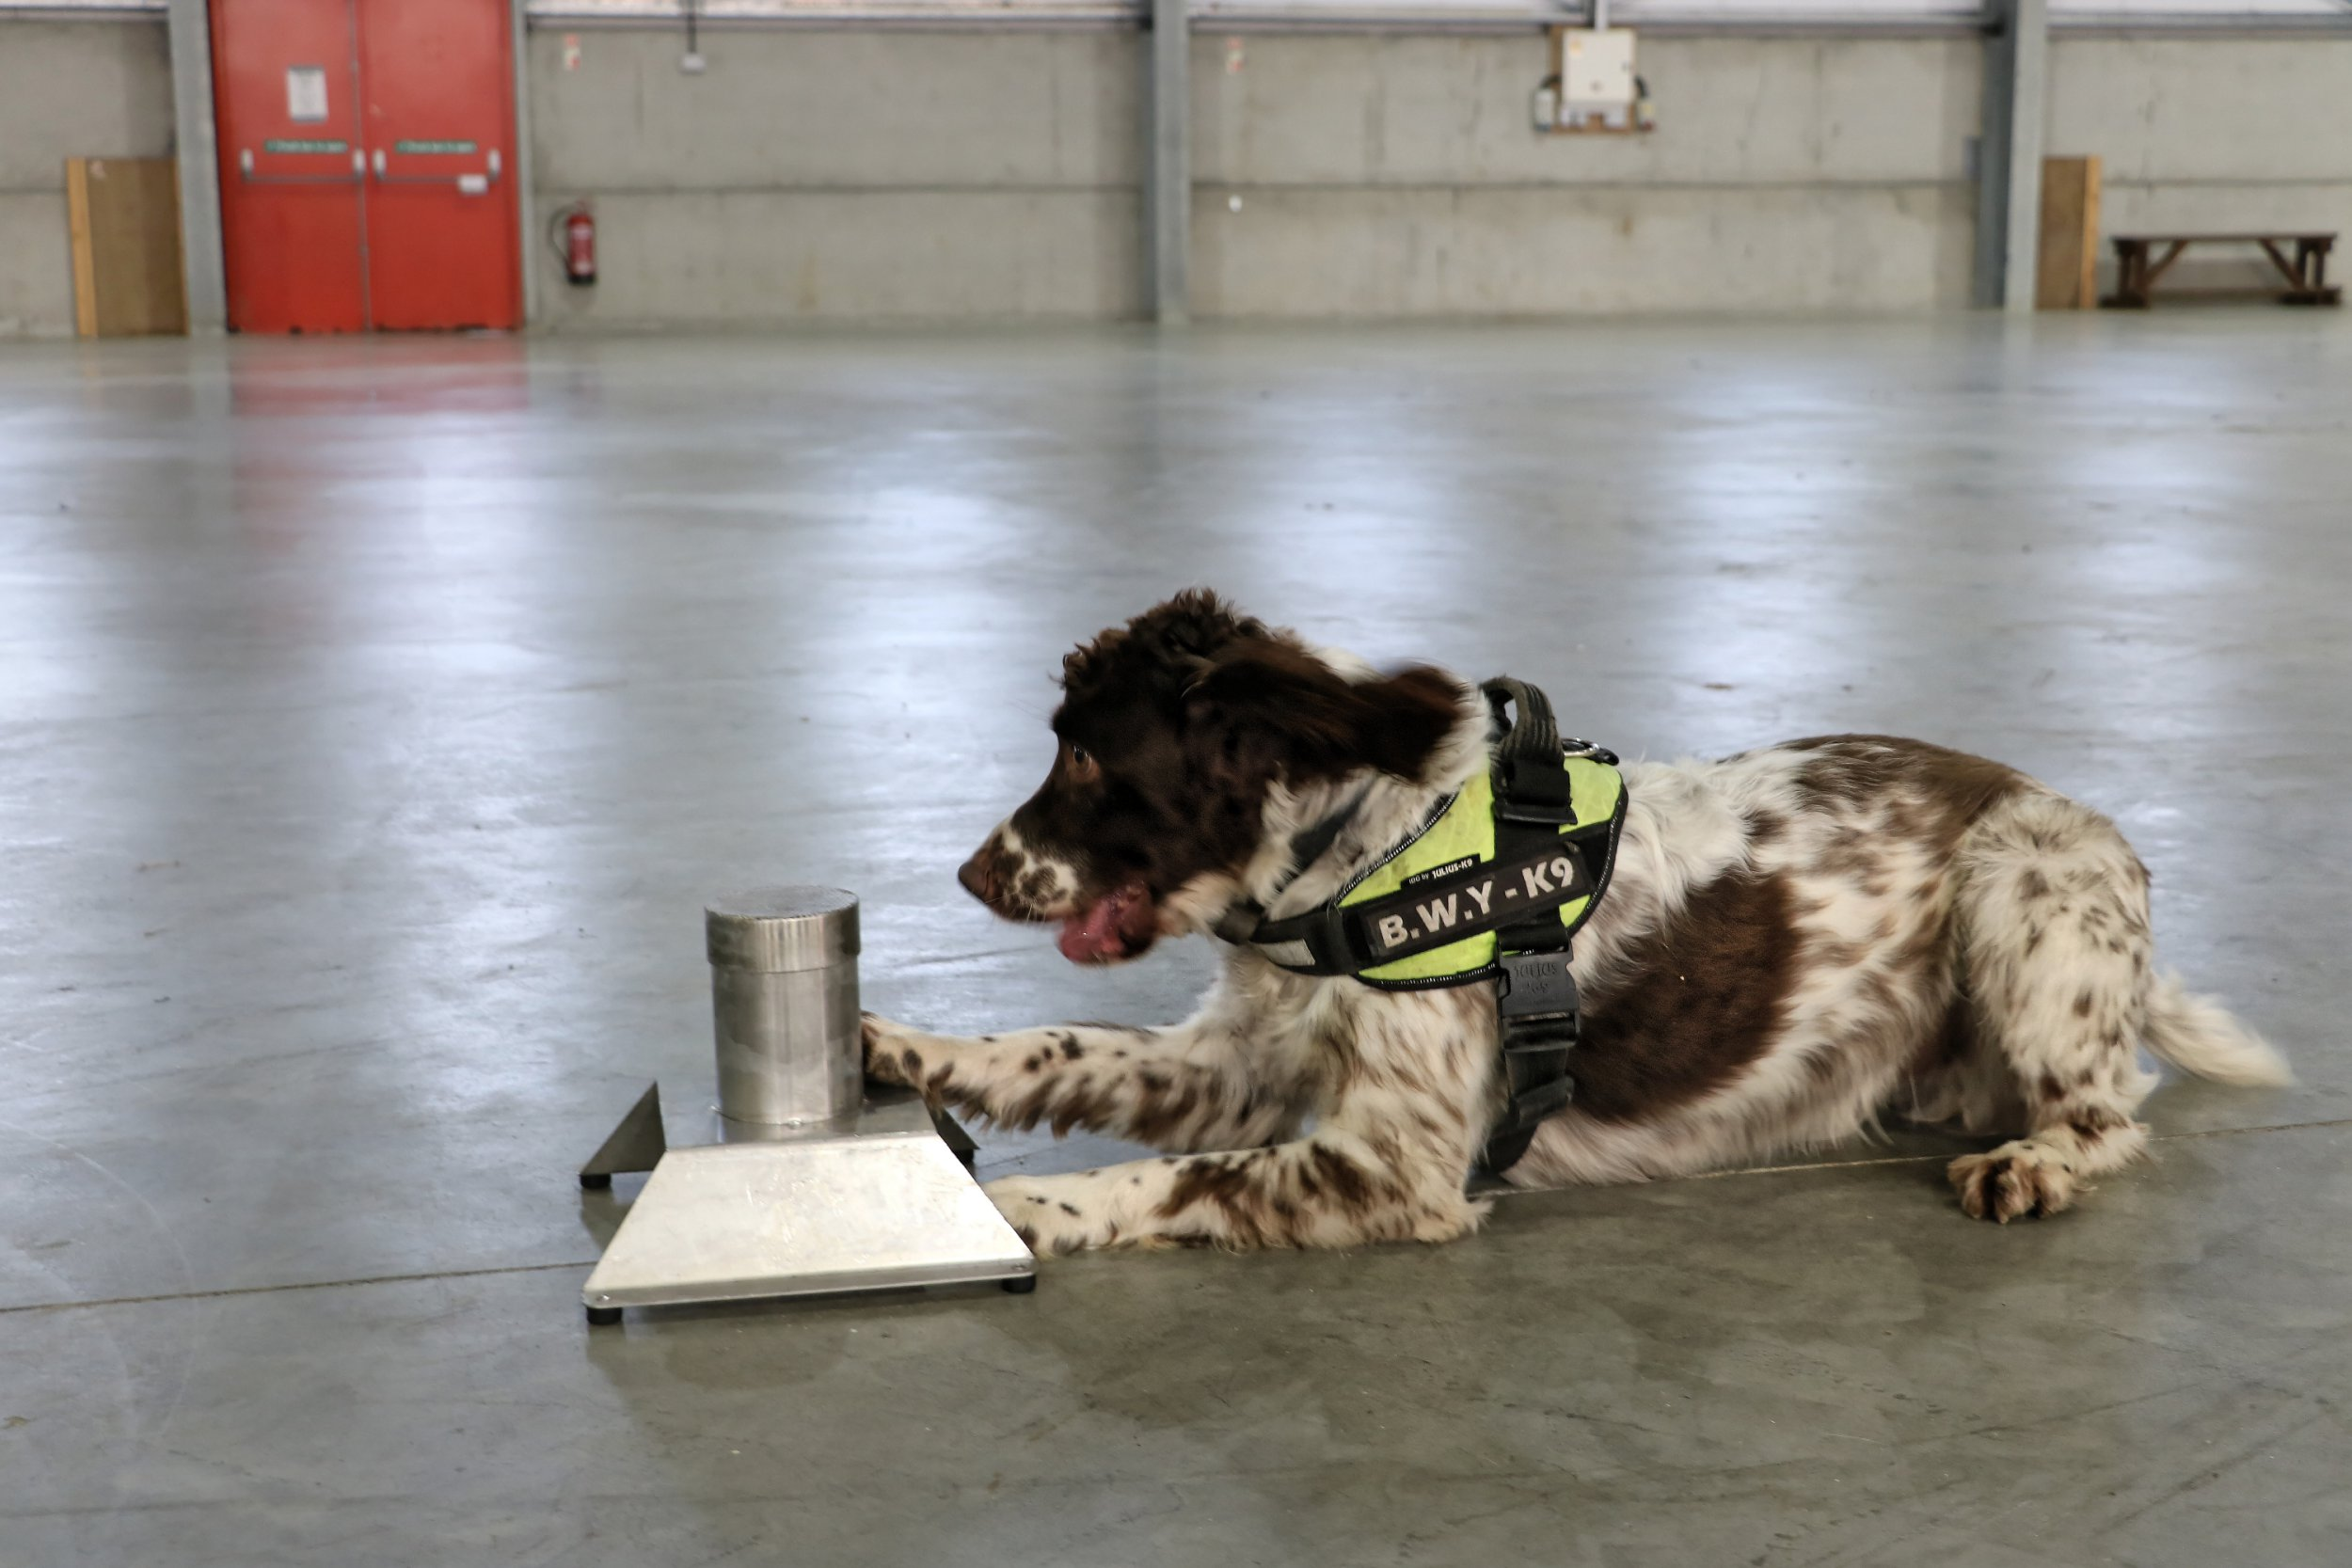 COPY BY TOM BEDFORD Pictured: Scamp the sniffer dog. Re: A tobacco sniffer dog has a ?25k bounty on its head according to its owner in Pembrokeshire, Wales, UK. During his five year career, Scamp the springer spaniel has sniffed out ?6 million worth of illegal tobacco, thanks to his powerful sense of smell and natural hunting instincts. Owner Stuart Phillips said Scamp?s success rate at sniffing out illegal tobacco hauls means he poses a big threat to the criminals who smuggle in and sell the goods. ?We had to stop working in one part of the country last year, because there was a ?25,000 bounty put on his head,? said Stuart. ?It was believed to be linked to an organised crime group and the relevant authorities were informed. ?I?ve also had death threats, my windscreen has been smashed and my tyres slashed,? he added. ?It?s understandable really, when you?re upsetting some really nasty people.?